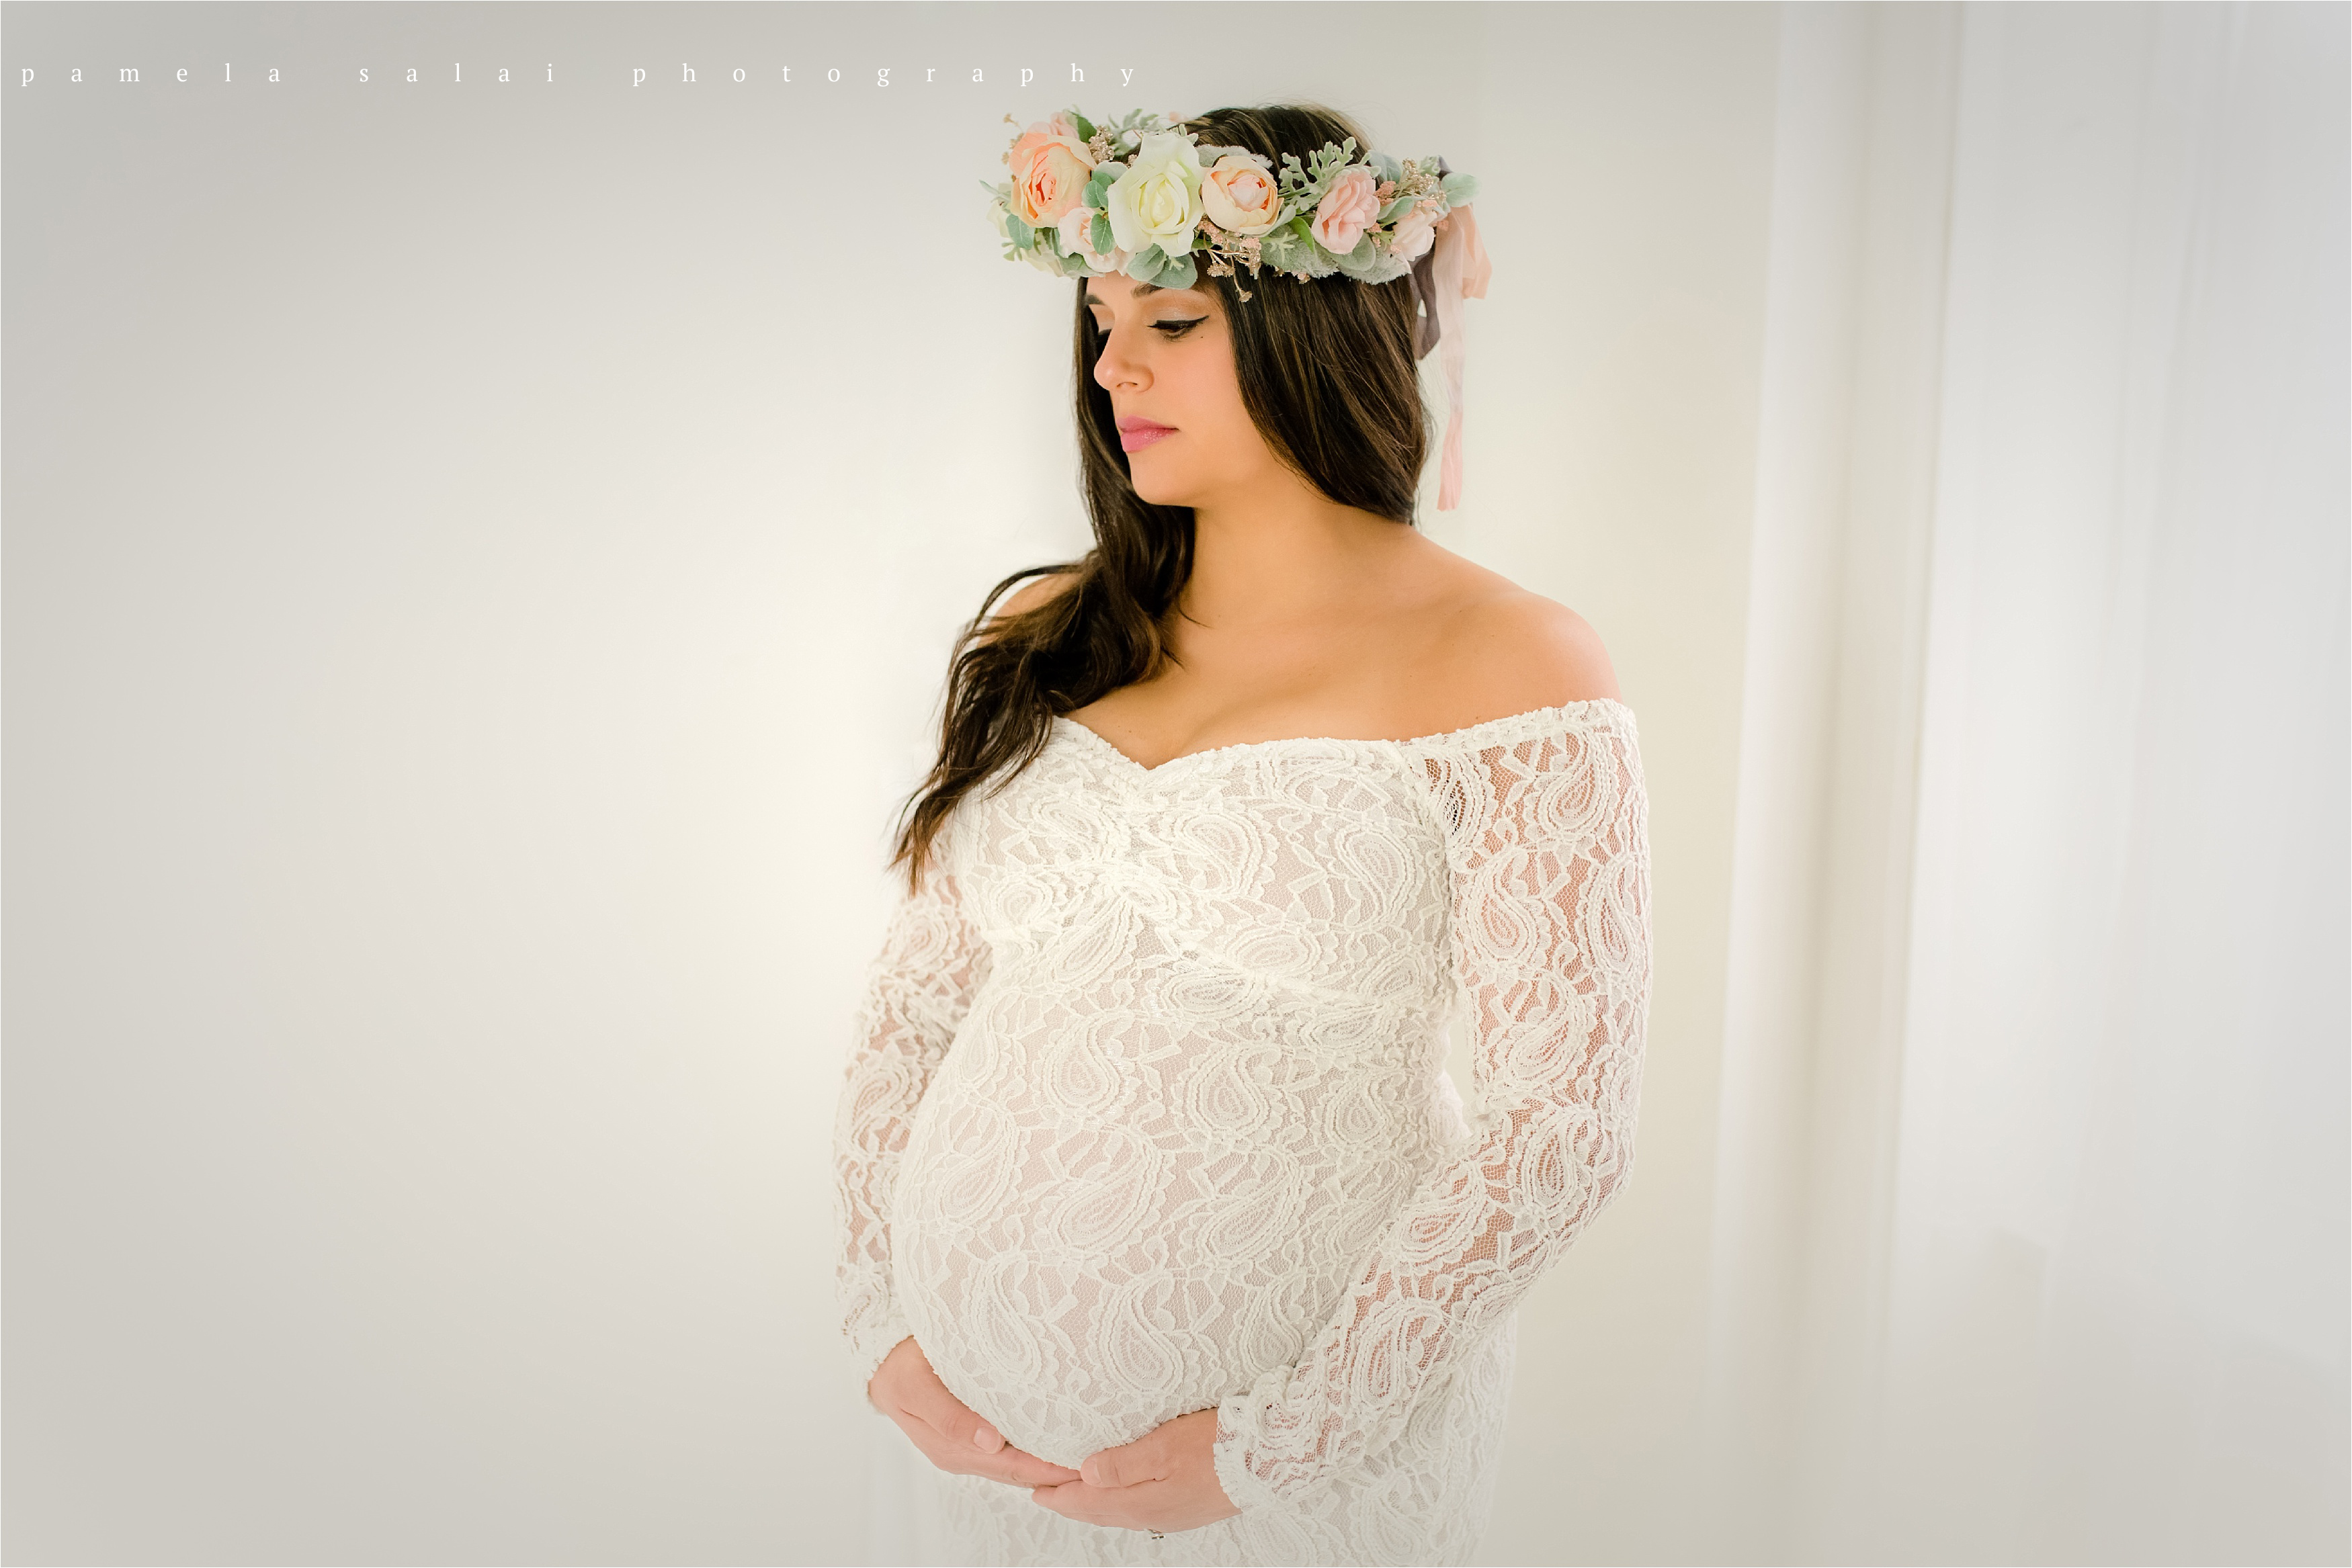 Pure white maternity session simple and sweet floral crown lace dress beautiful whimsy